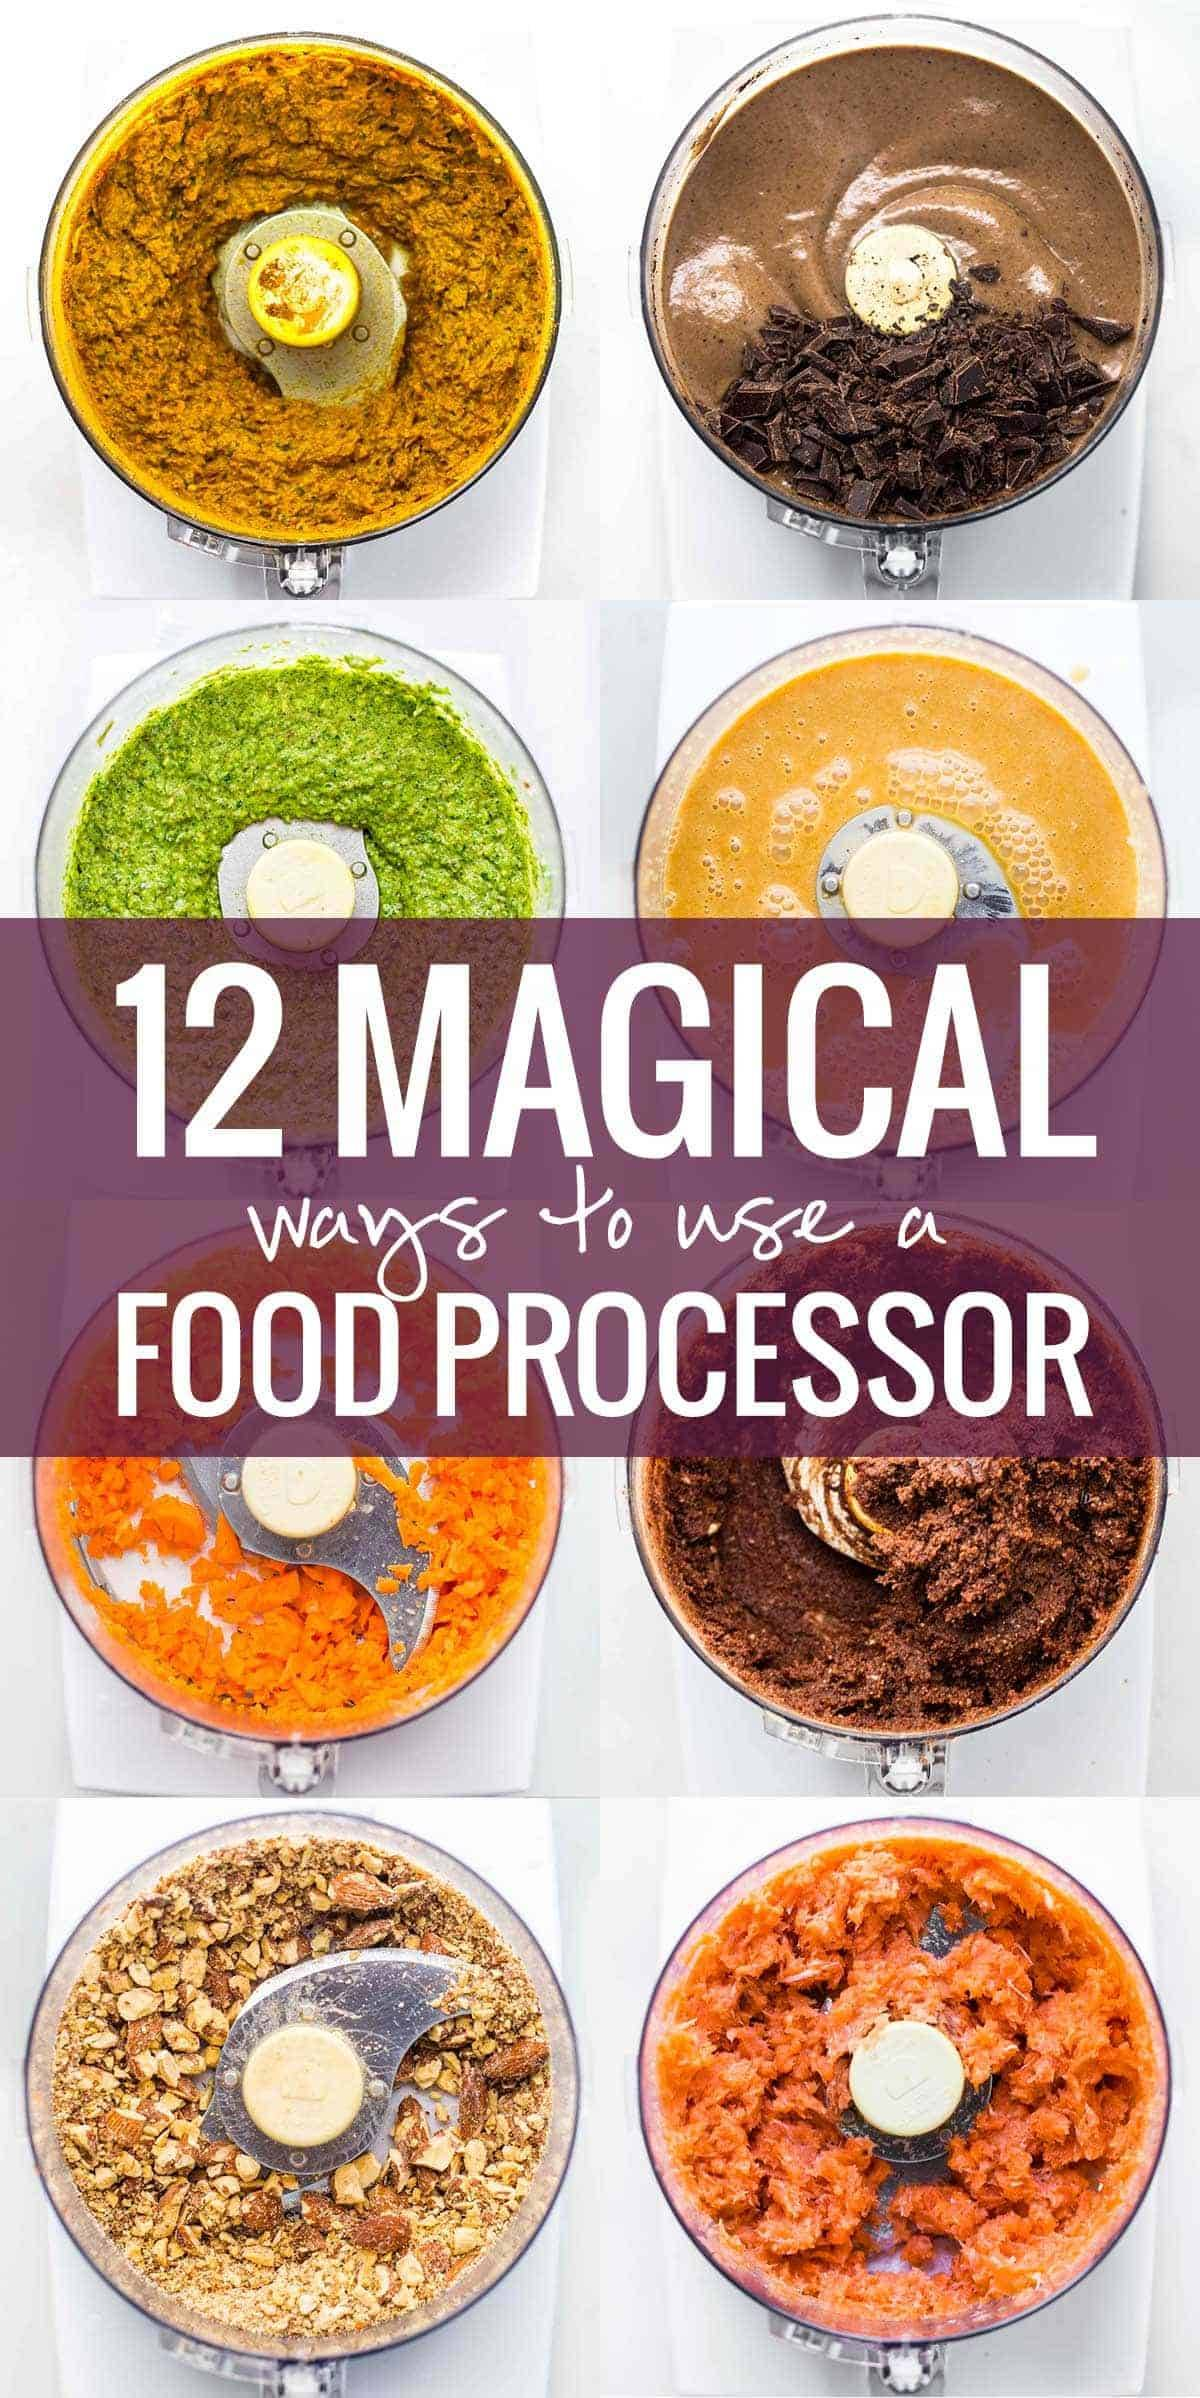 12 magical ways to use a food processor pinch of yum 12 magical ways to use a food processor forumfinder Choice Image